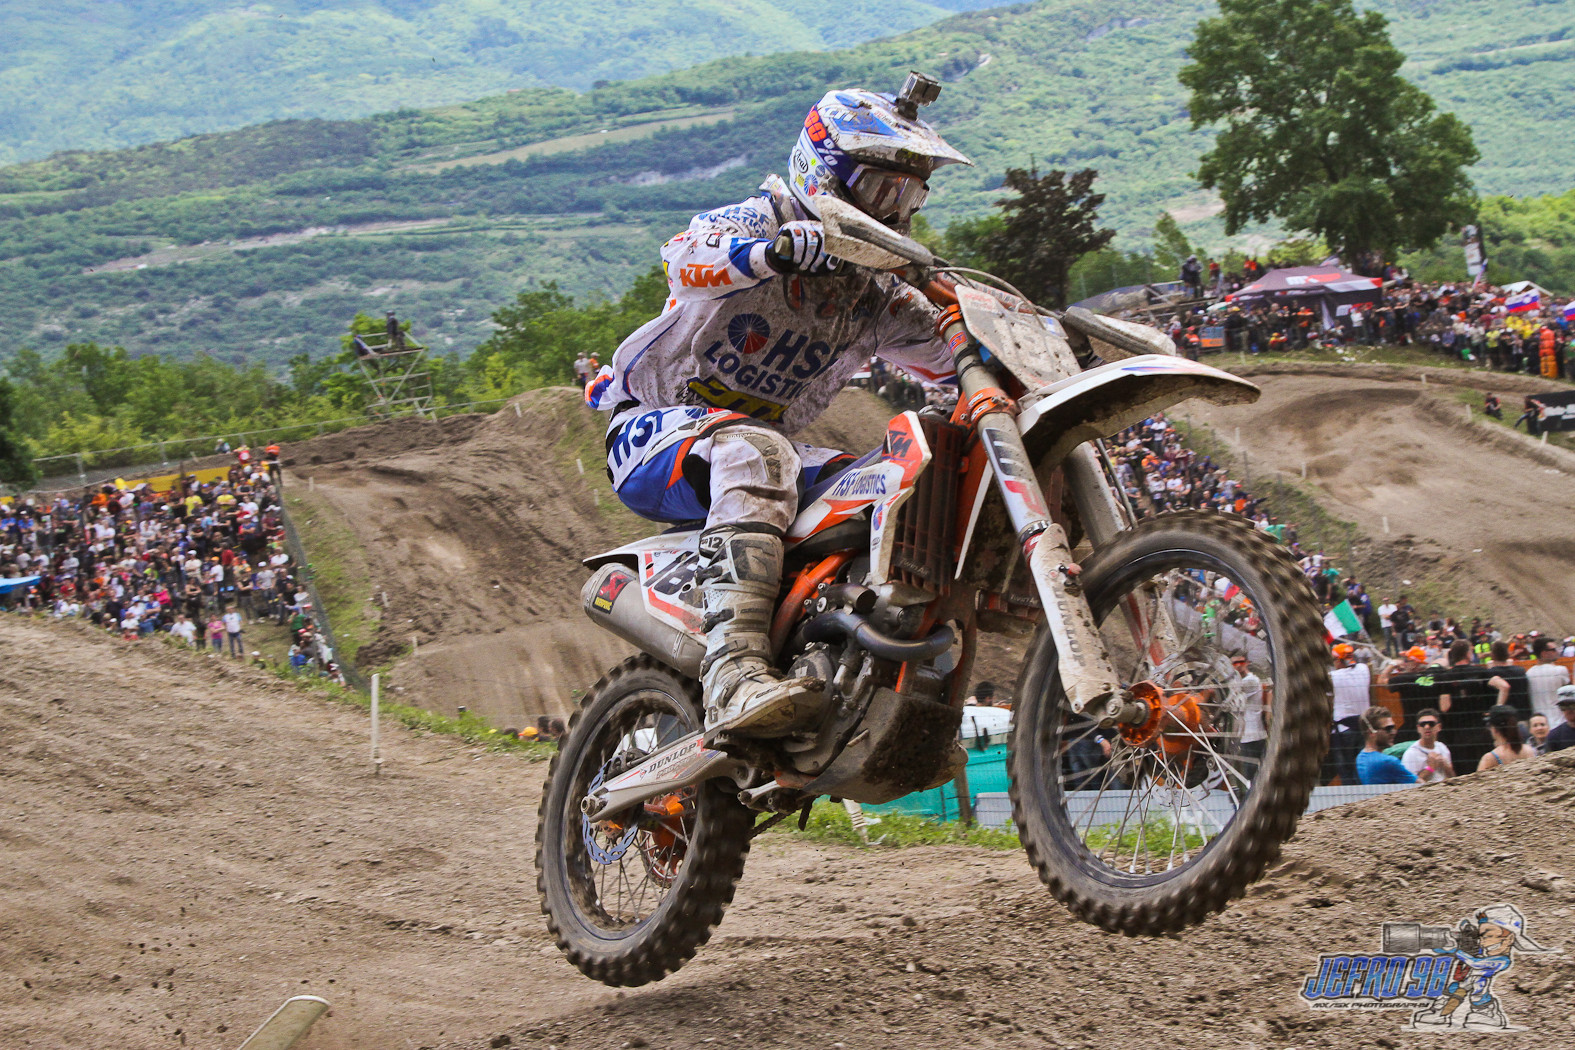 Brian Bogers - Photo Gallery: MXGP of Trentino, Italy - Motocross Pictures - Vital MX